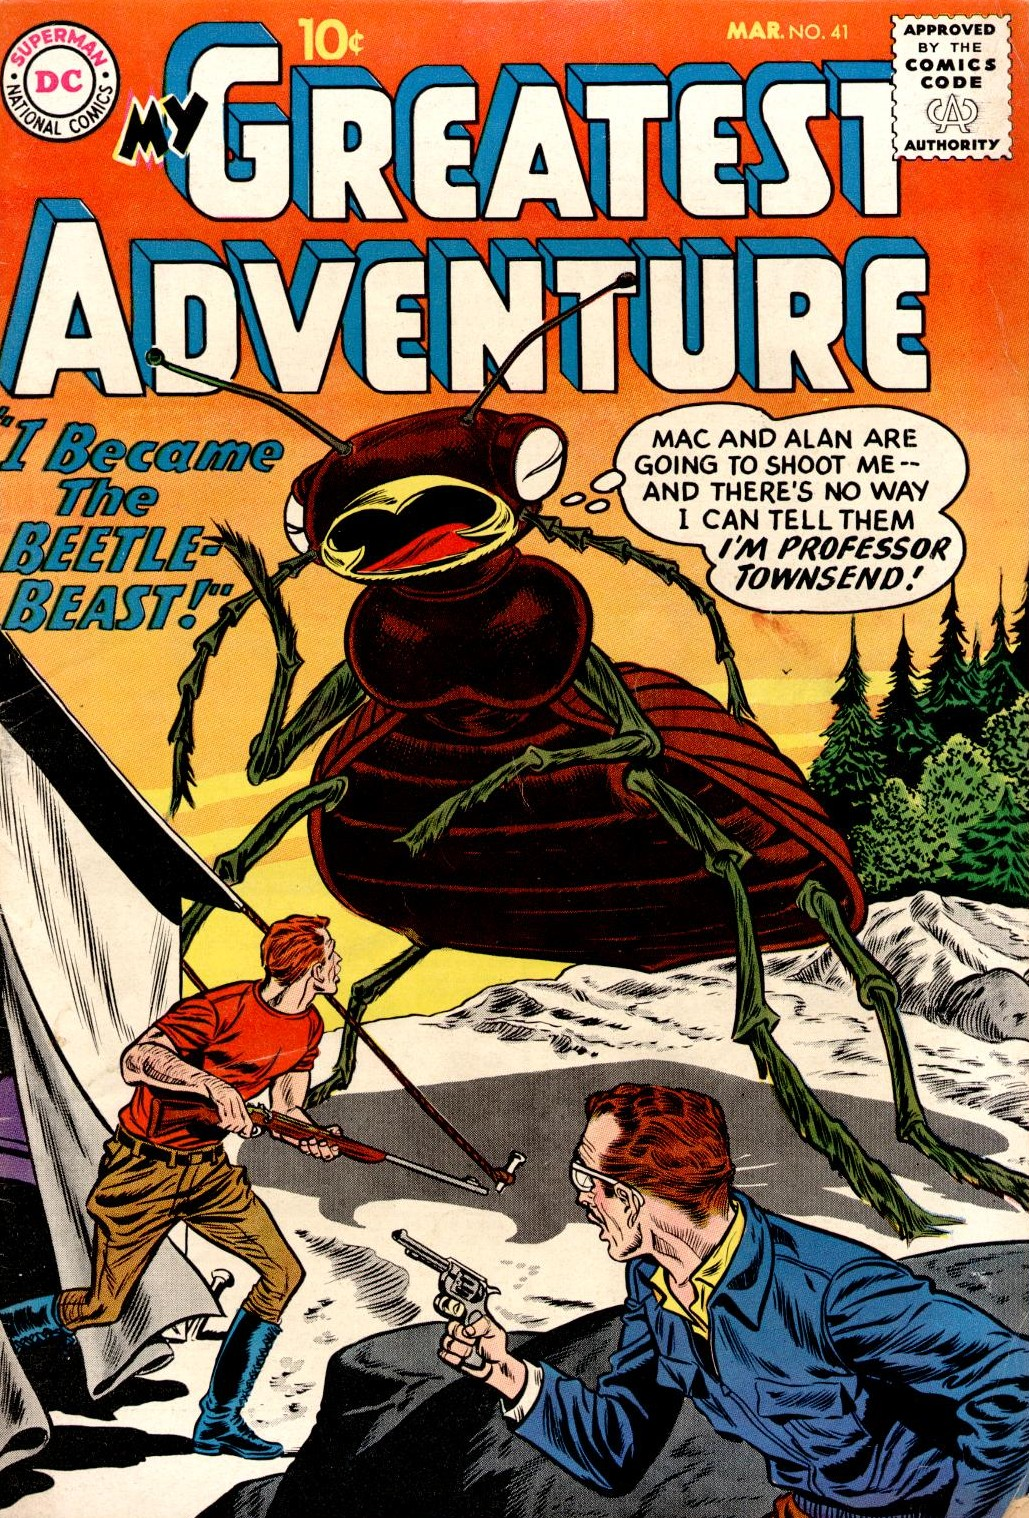 My Greatest Adventure (1955) issue 41 - Page 1